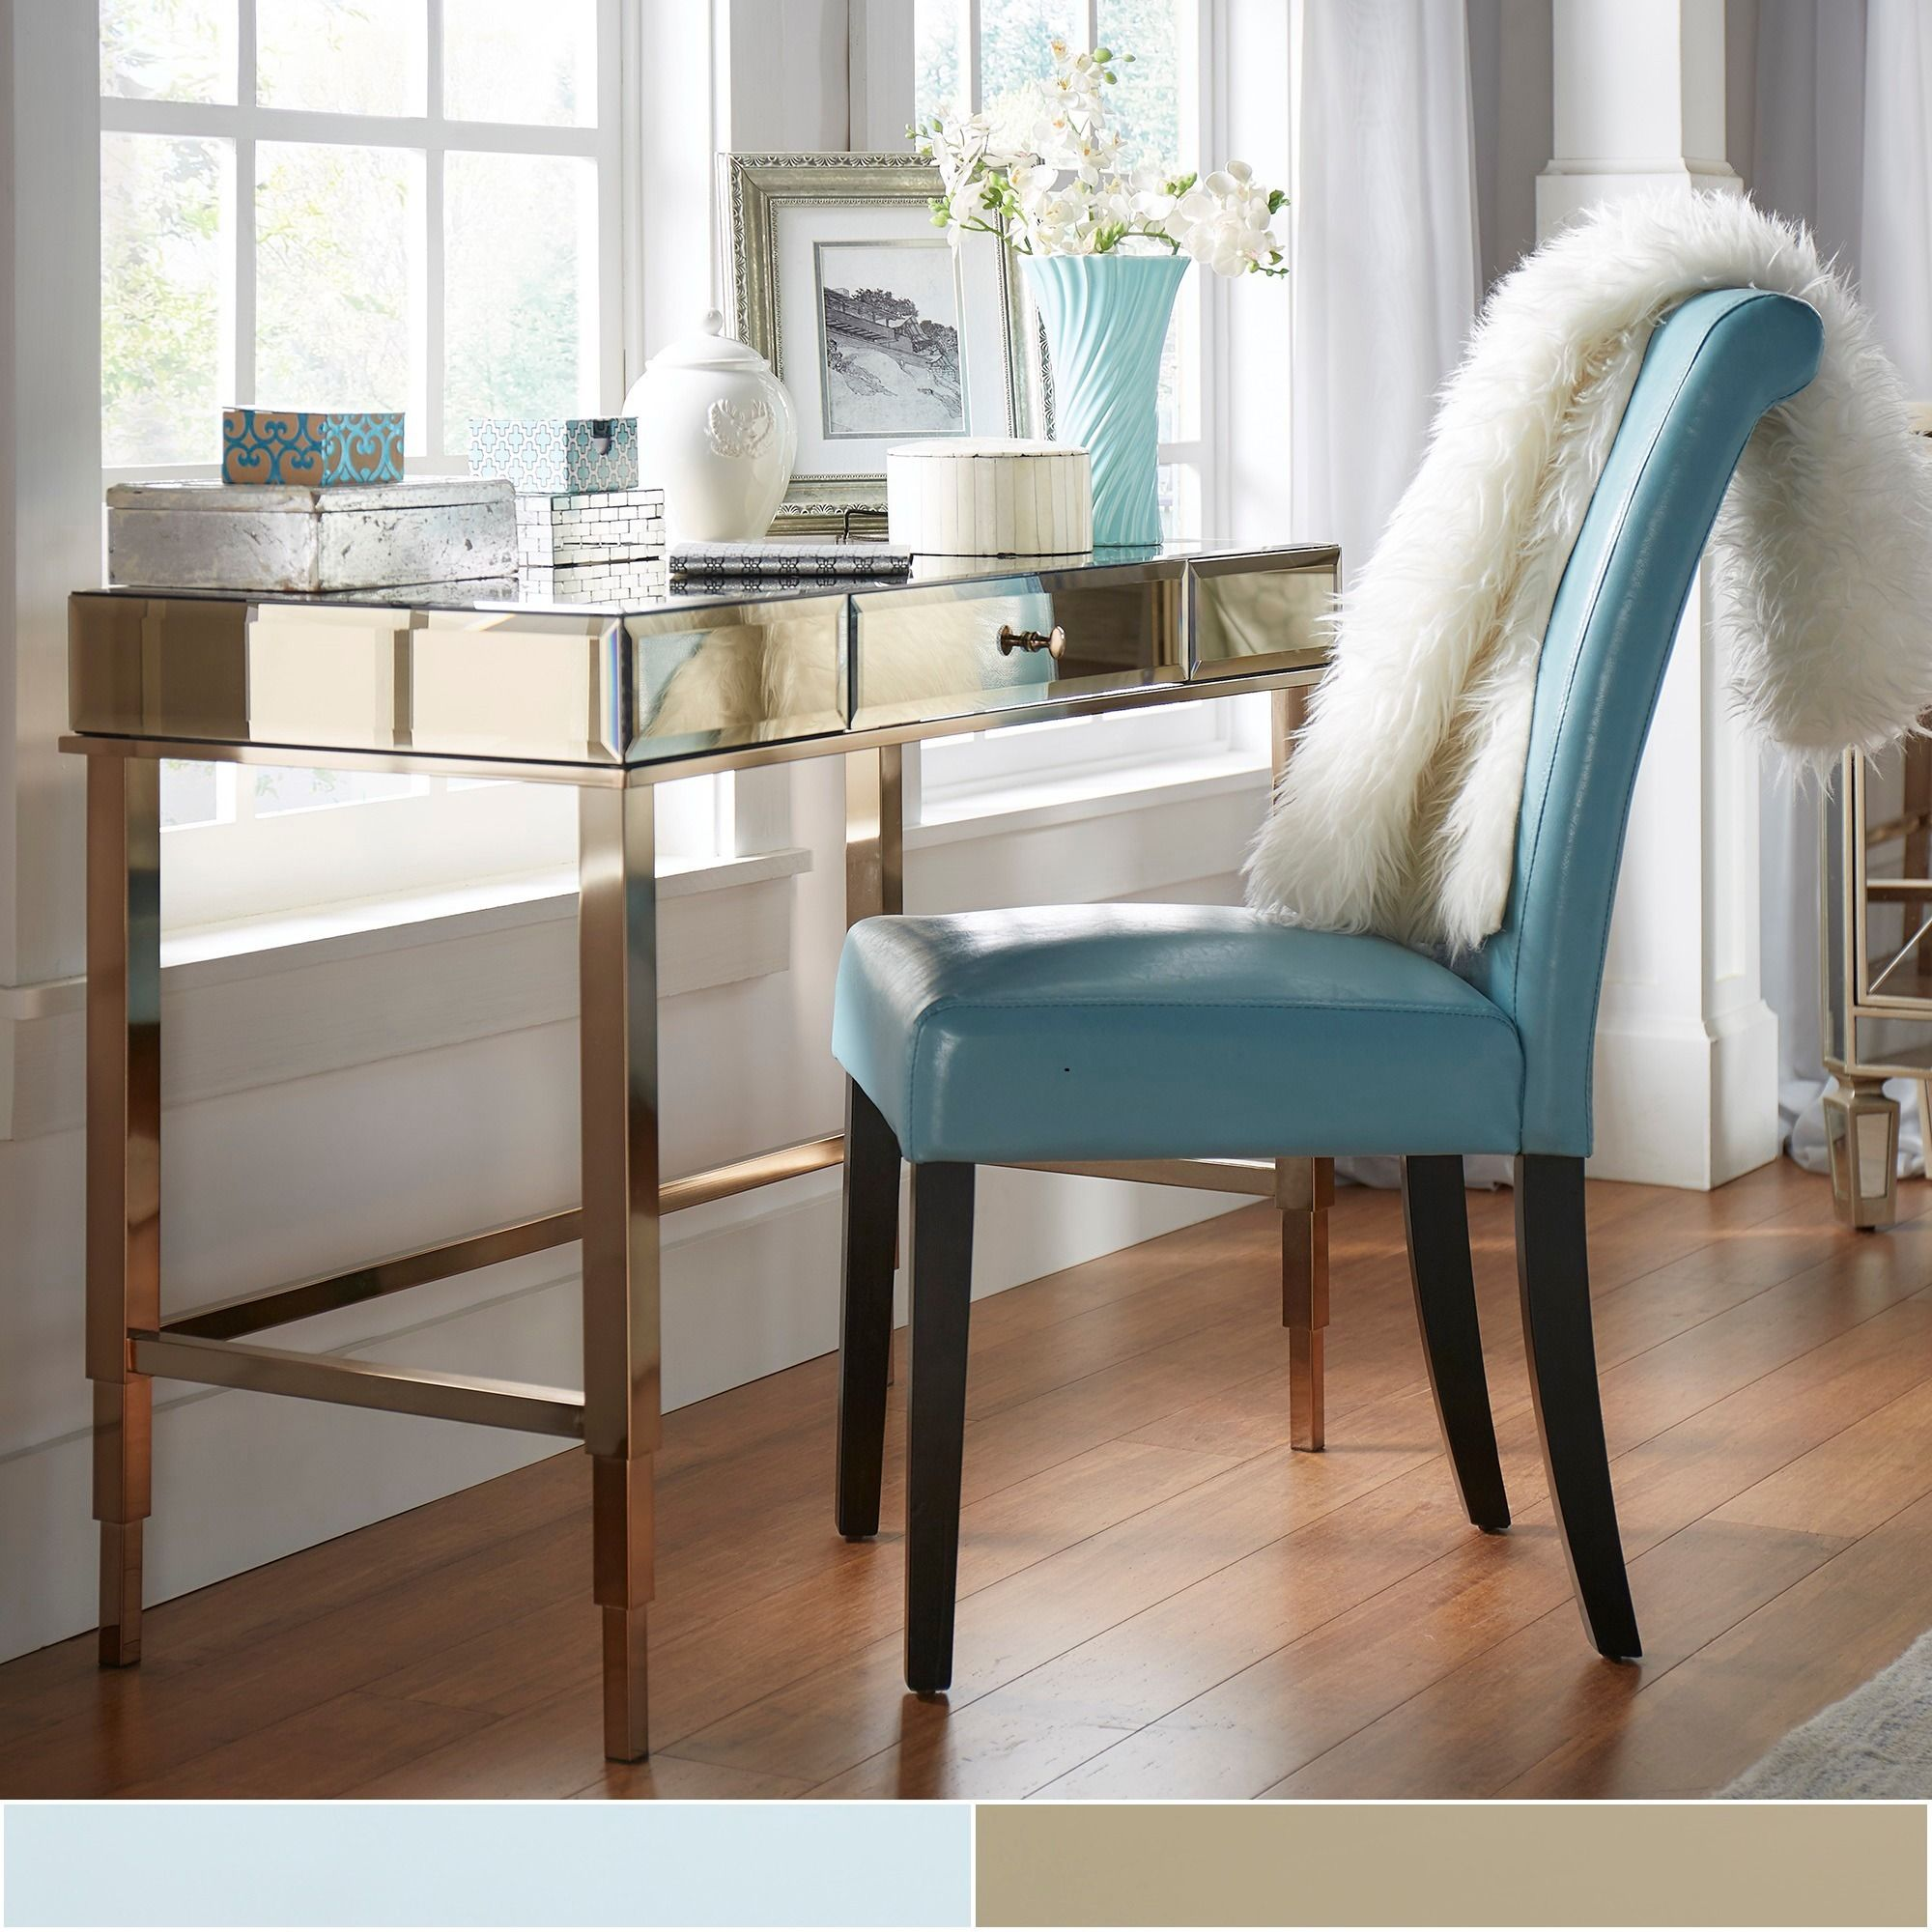 Add some glamour and functionality to any space with this Inspire Q mirrored  writing desk.